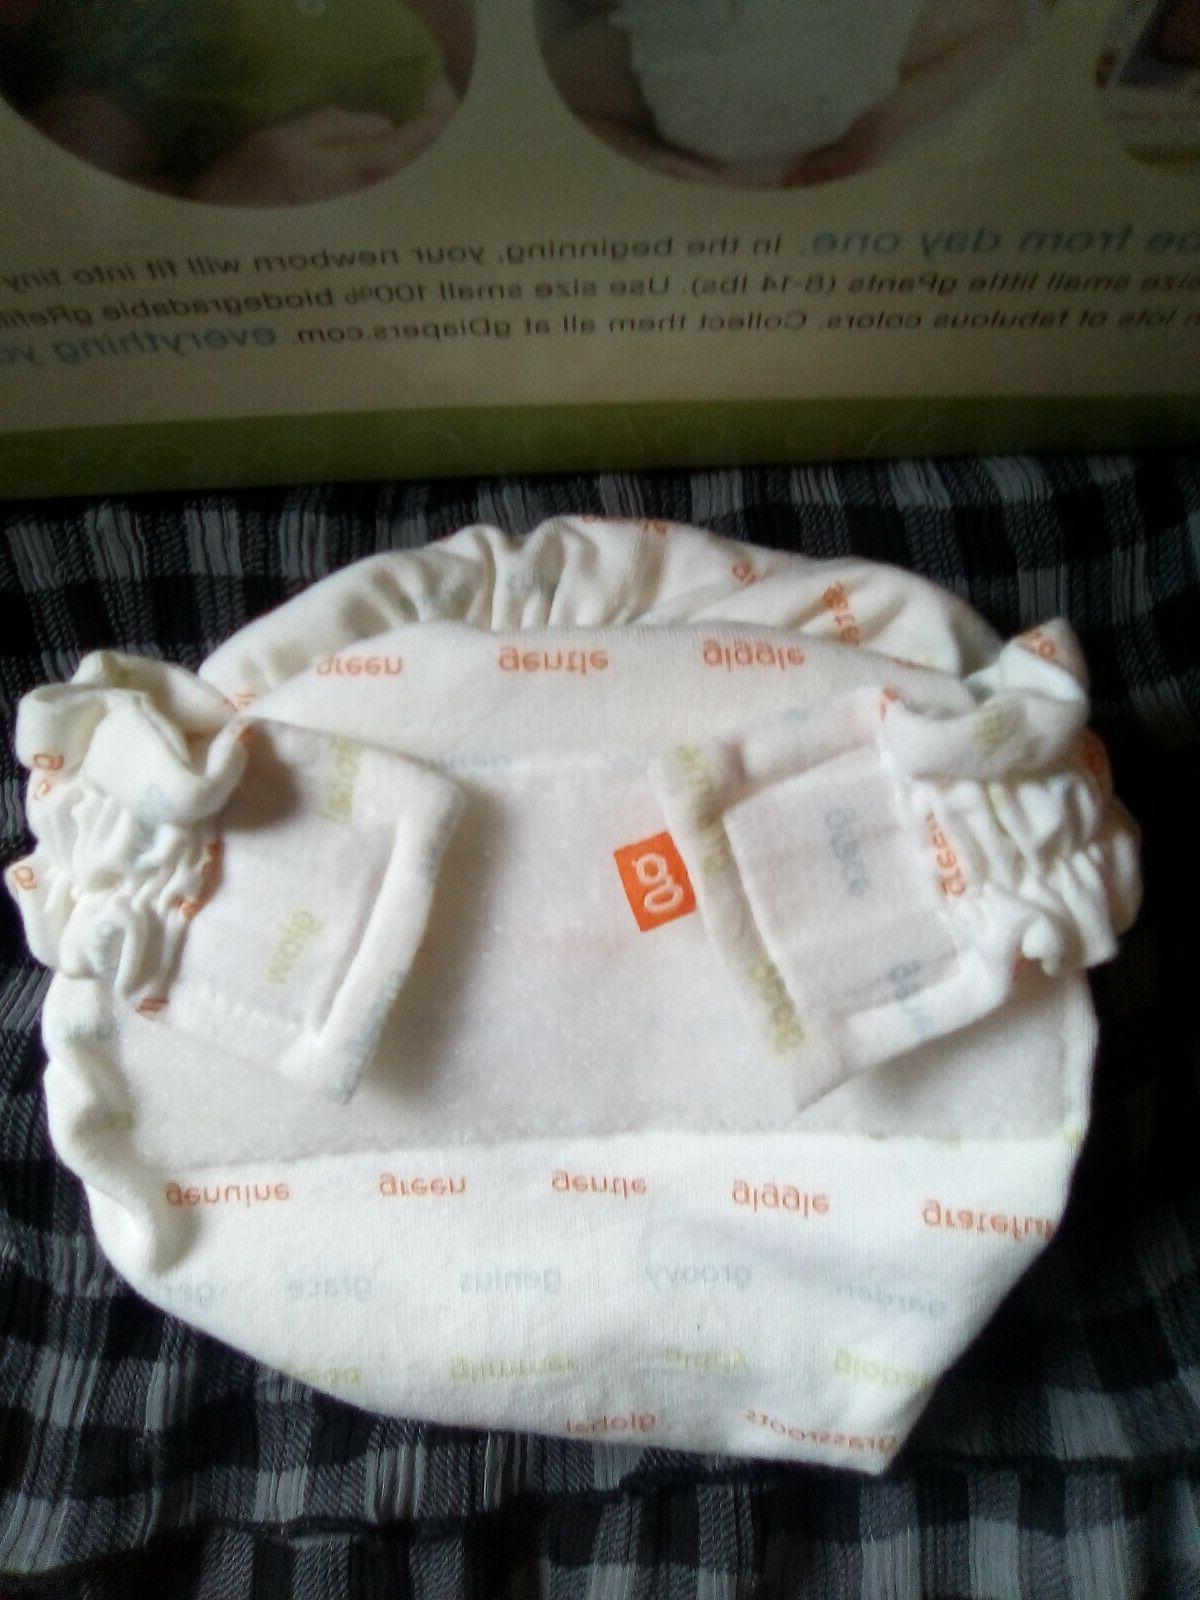 NEW gDIAPERS gWORD 6-10 0-12mon.